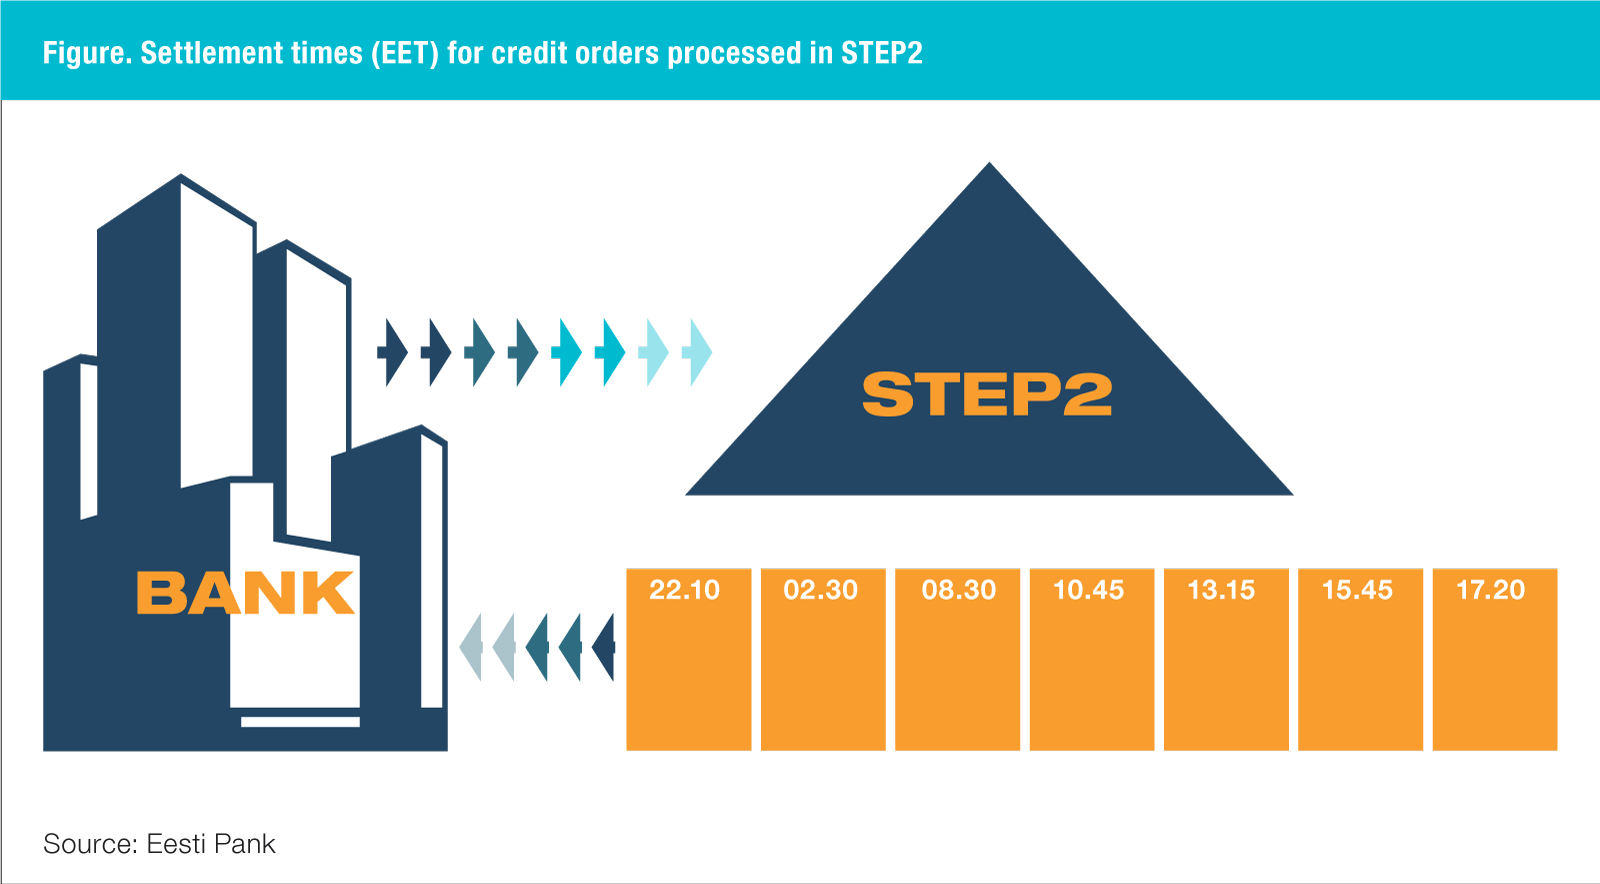 Settlement times for credit transfers processed in STEP2 (EET)